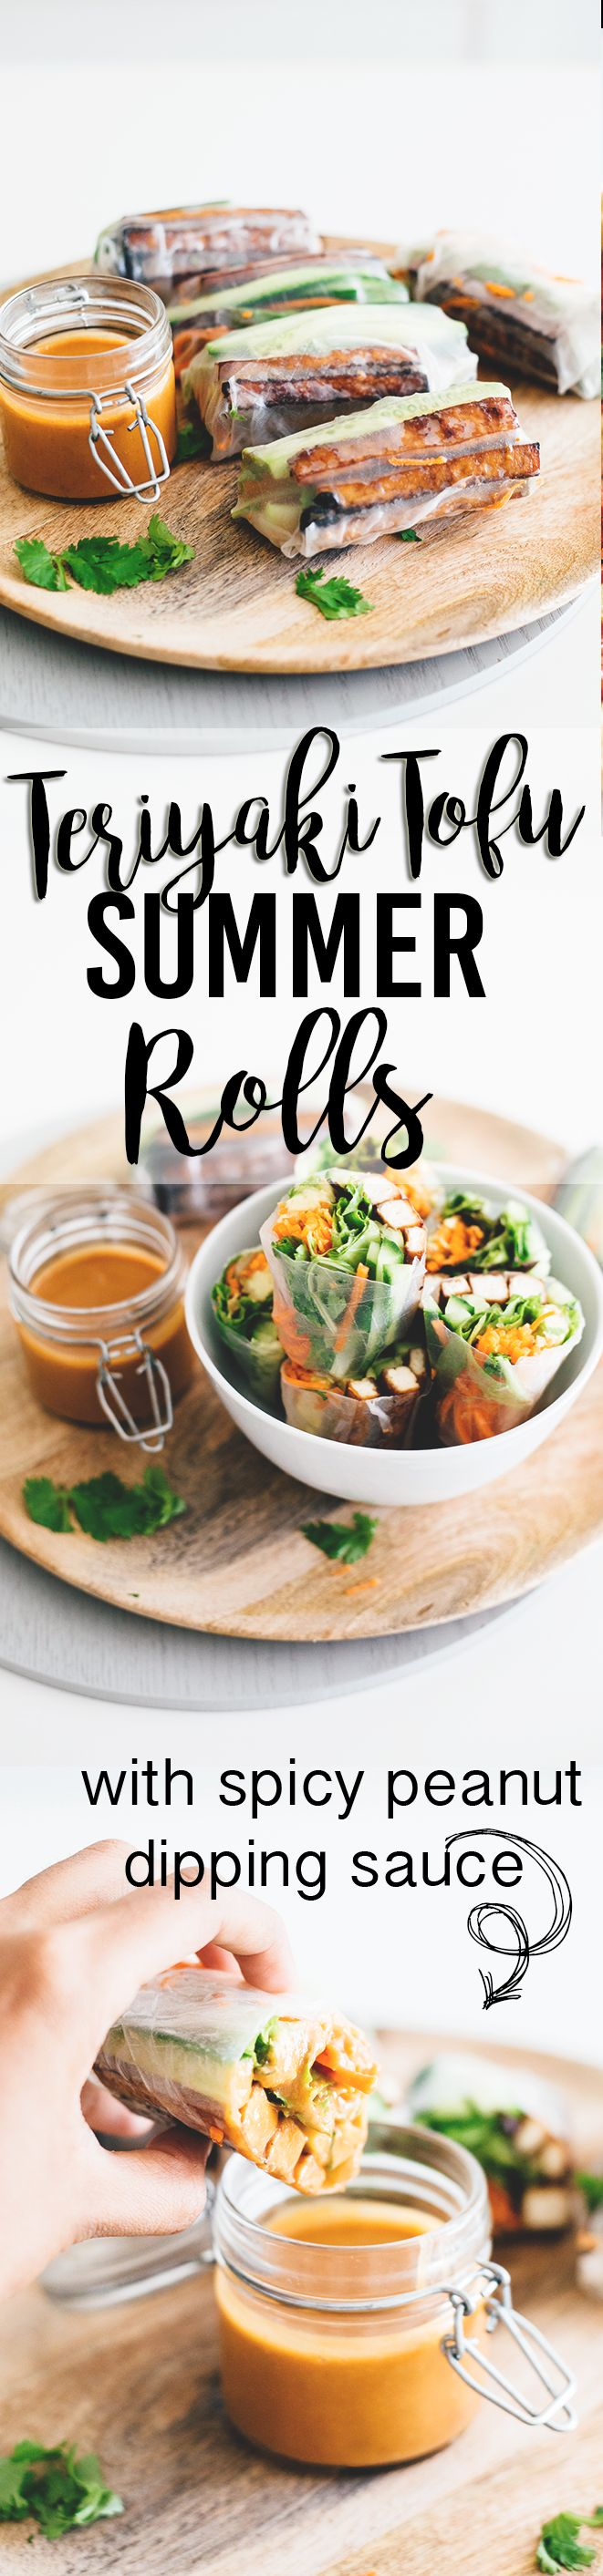 Vegan Teriyaki Tofu Summer Rolls - a healthy, light and low carb Asian inspired dish. Rice Paper Rolls with Teriyaki Baked Tofu, Fresh Veggies and a Spicy Peanut Dipping Sauce. #vegan #simple #healthy